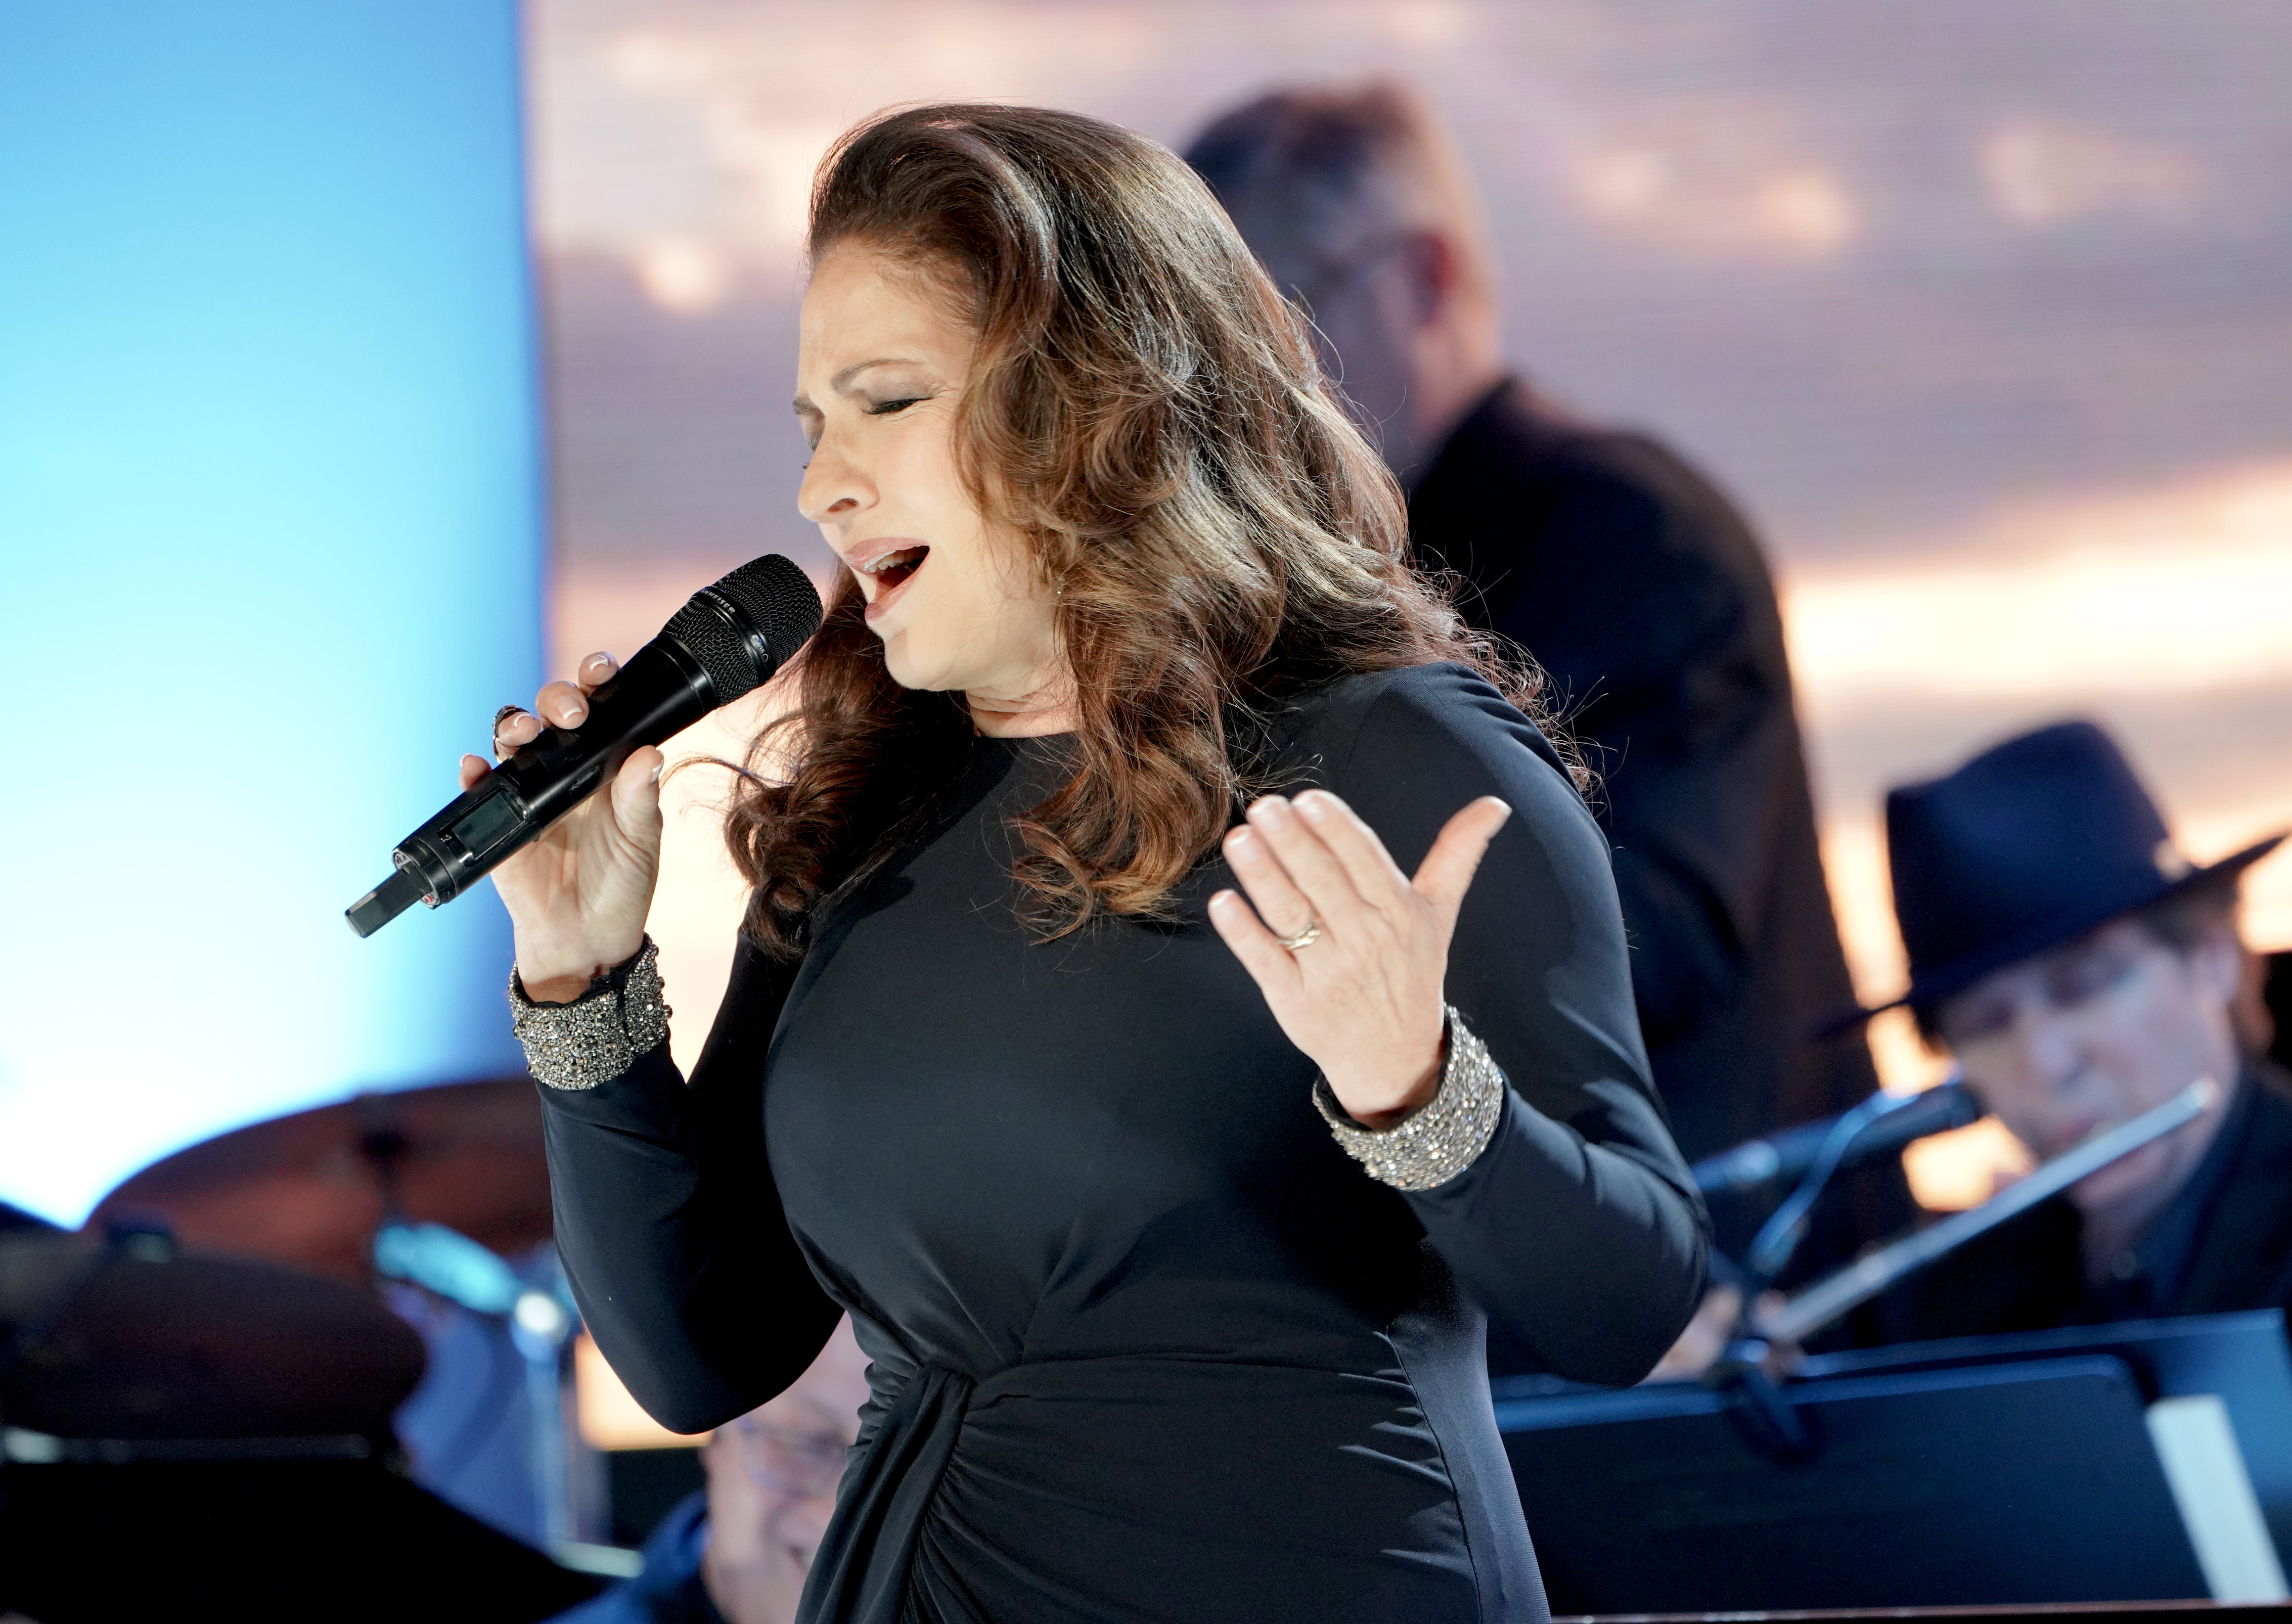 Gloria Estefan, Sting and other celebs will support India with star-studded event